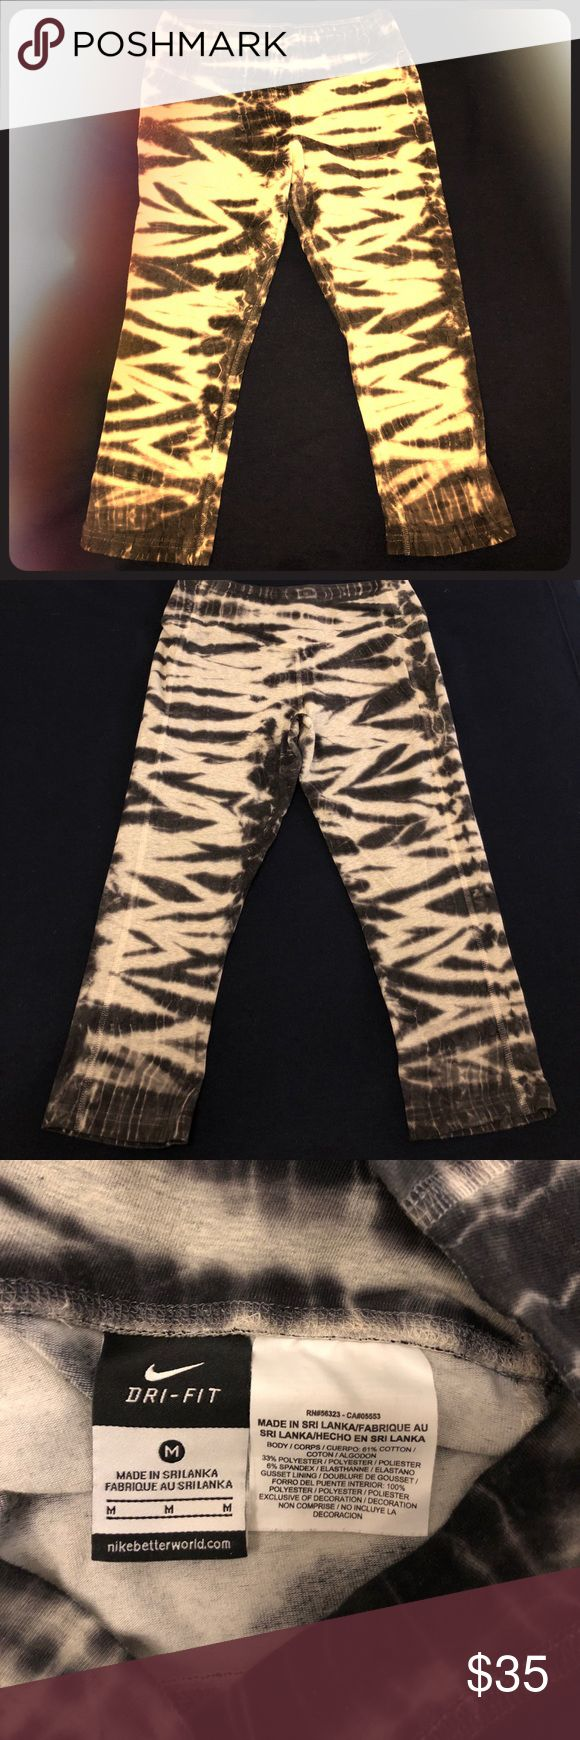 Nike dri fit women's capris M EUC Nike dri-fit women's medium capris.  Black grey tie dye.  Sexy as heck and you will get compliments.  Buy with confidence and get ready to have yourself checked out 😍 Nike Pants Capris